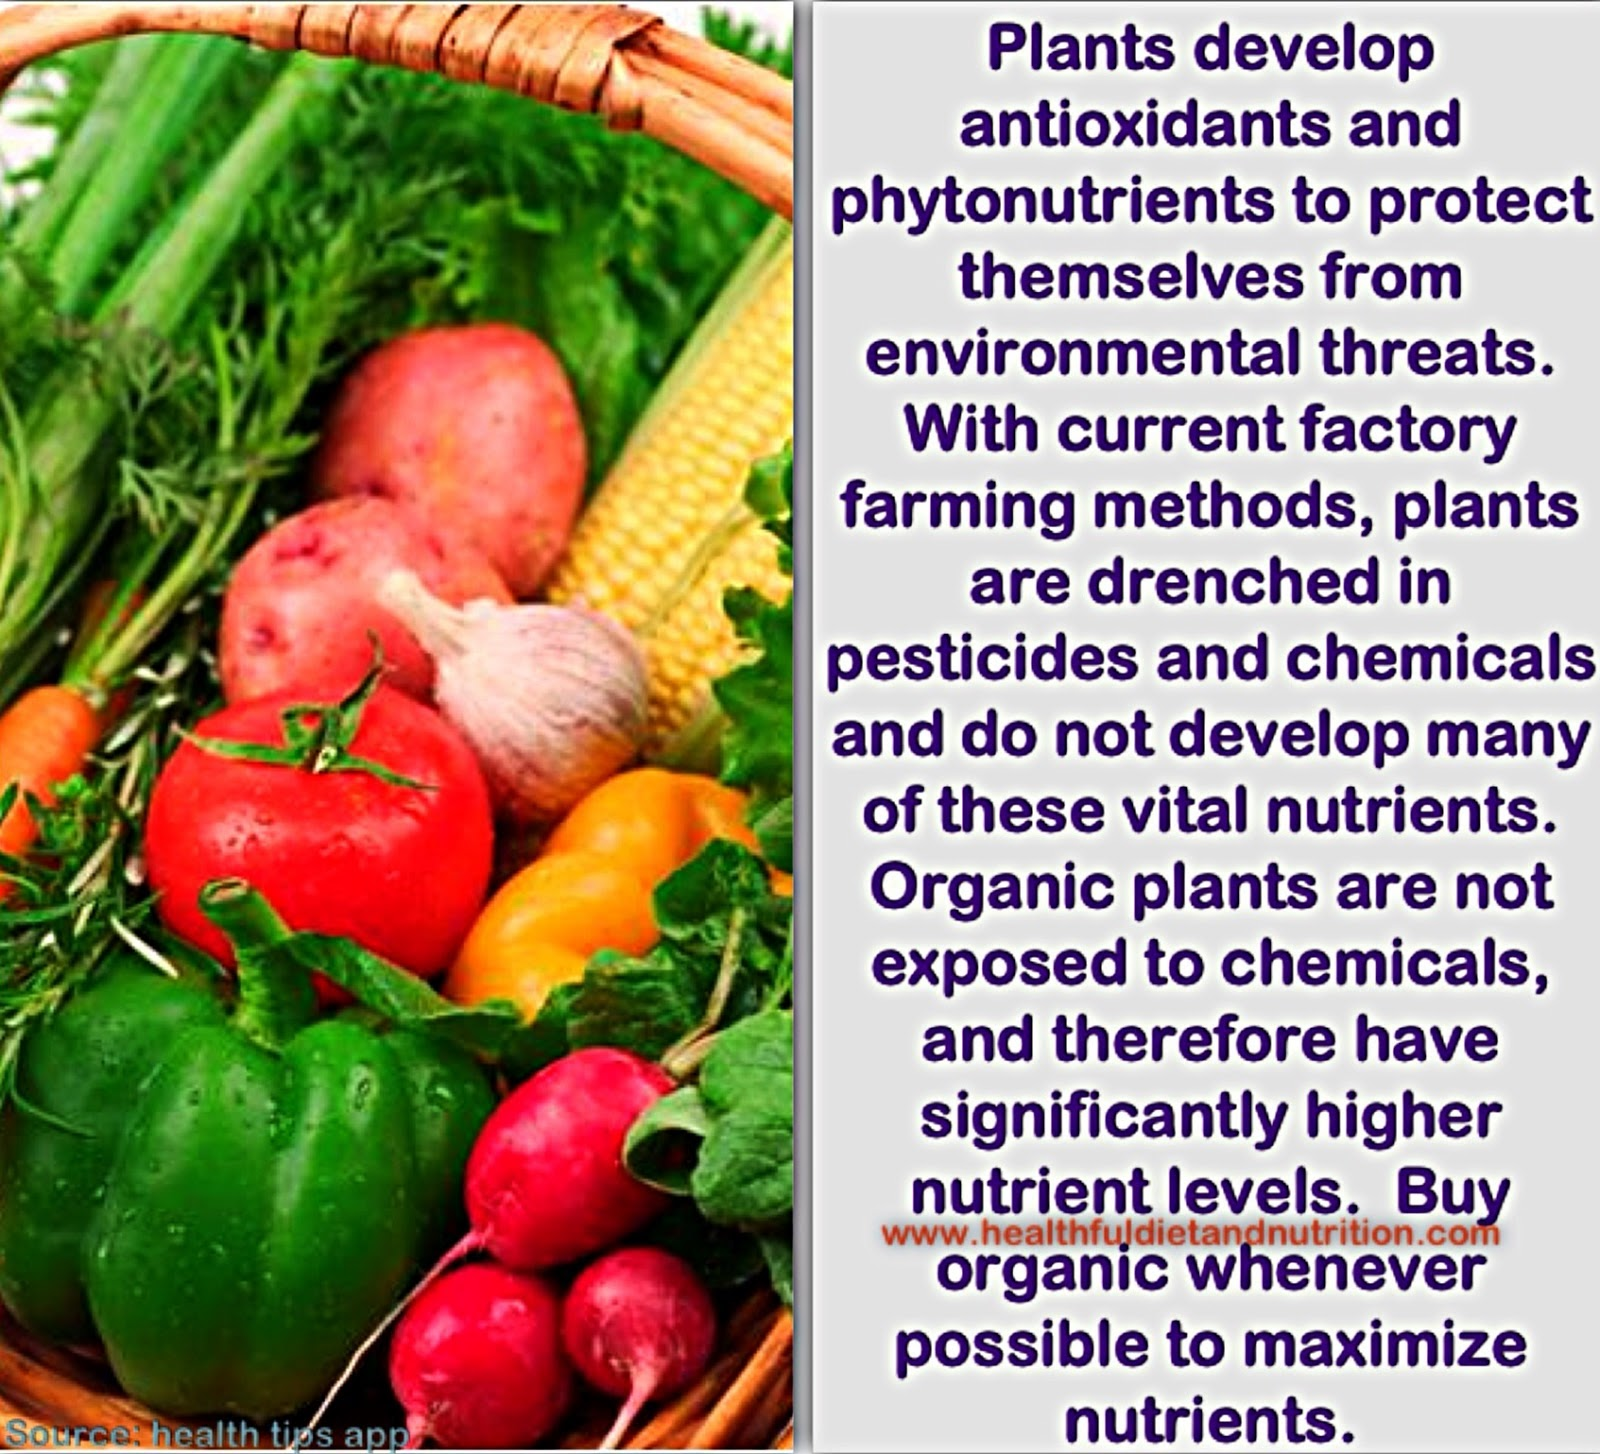 Consume Organic Foods To Maximize Nutrients